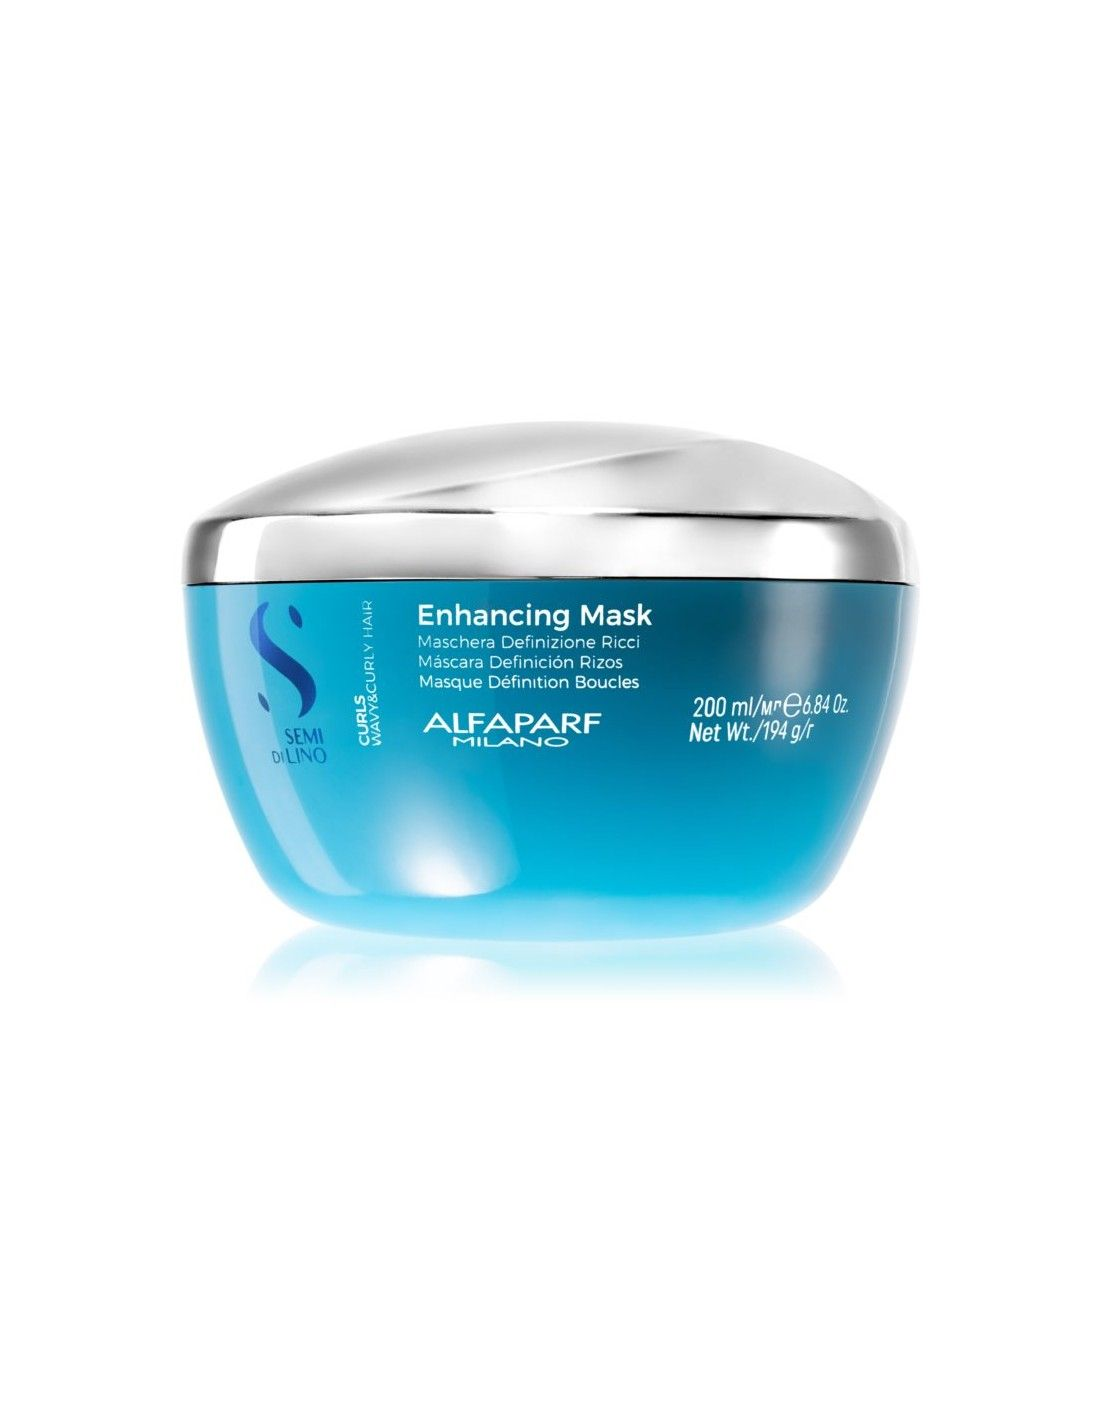 ALFAPARF SEMI DI LINO CURLS (CACHOS) MASK 200ML